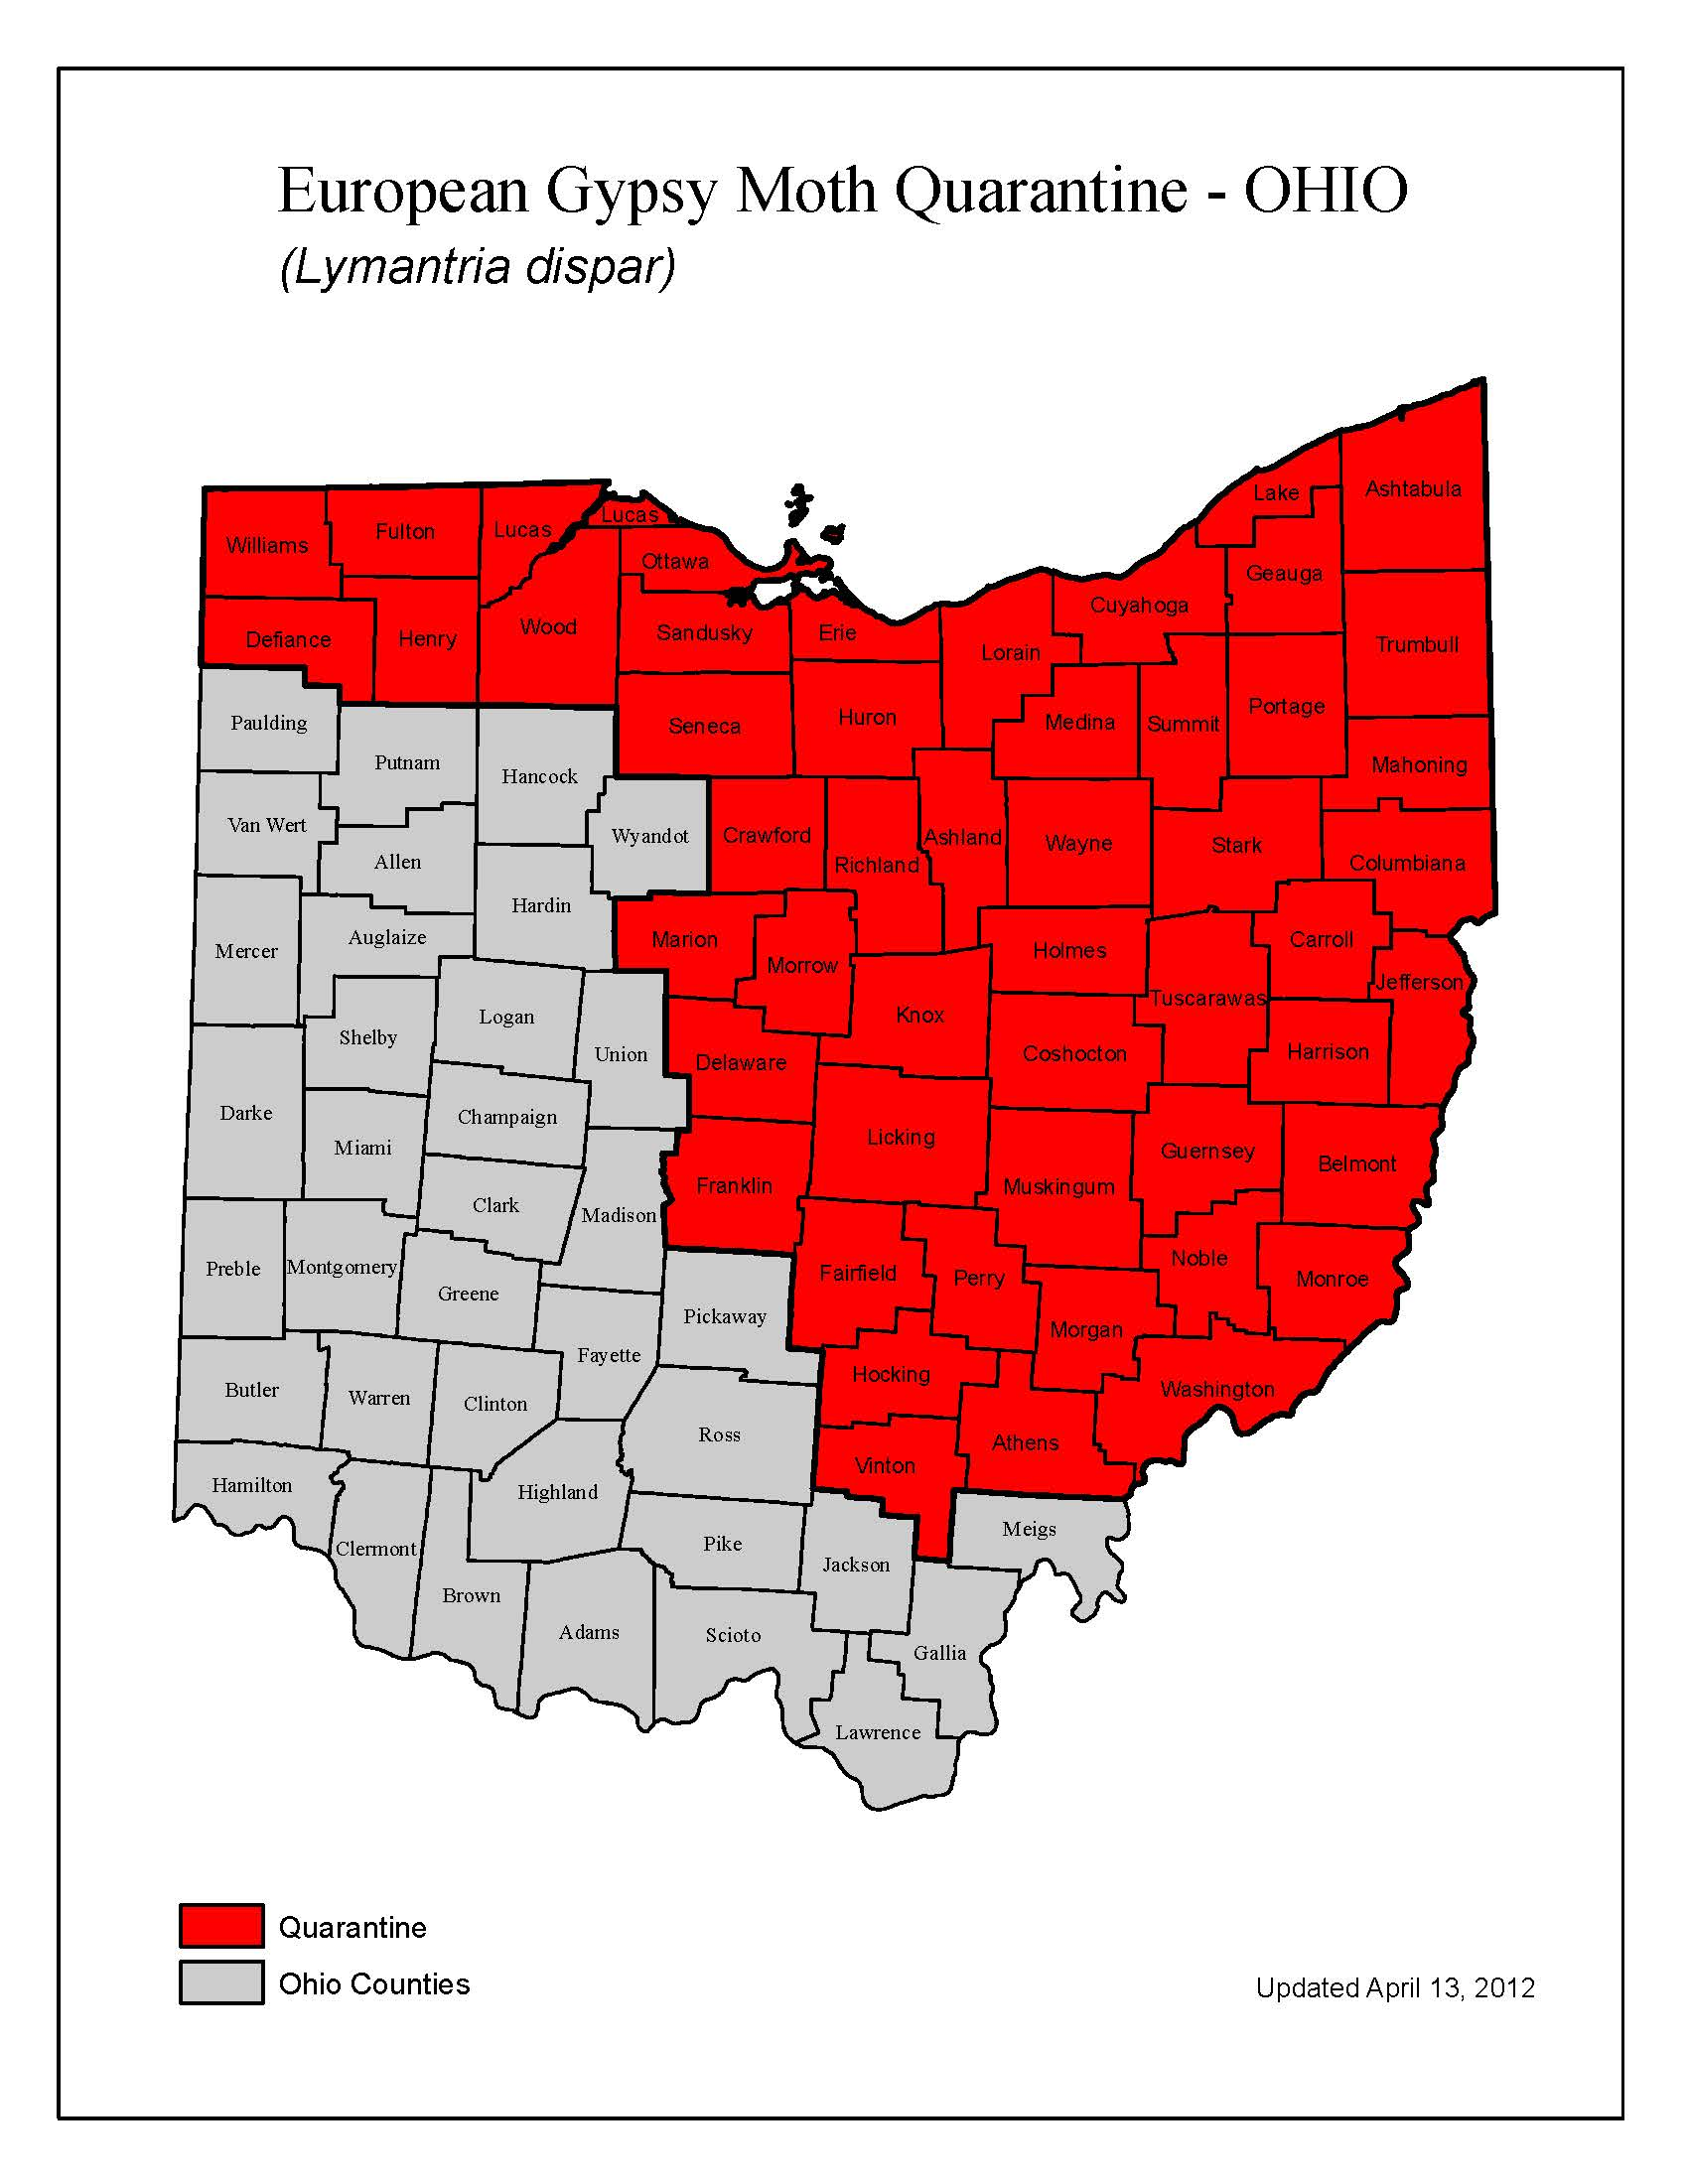 Ohio Gypsy Moth Quarantine Map